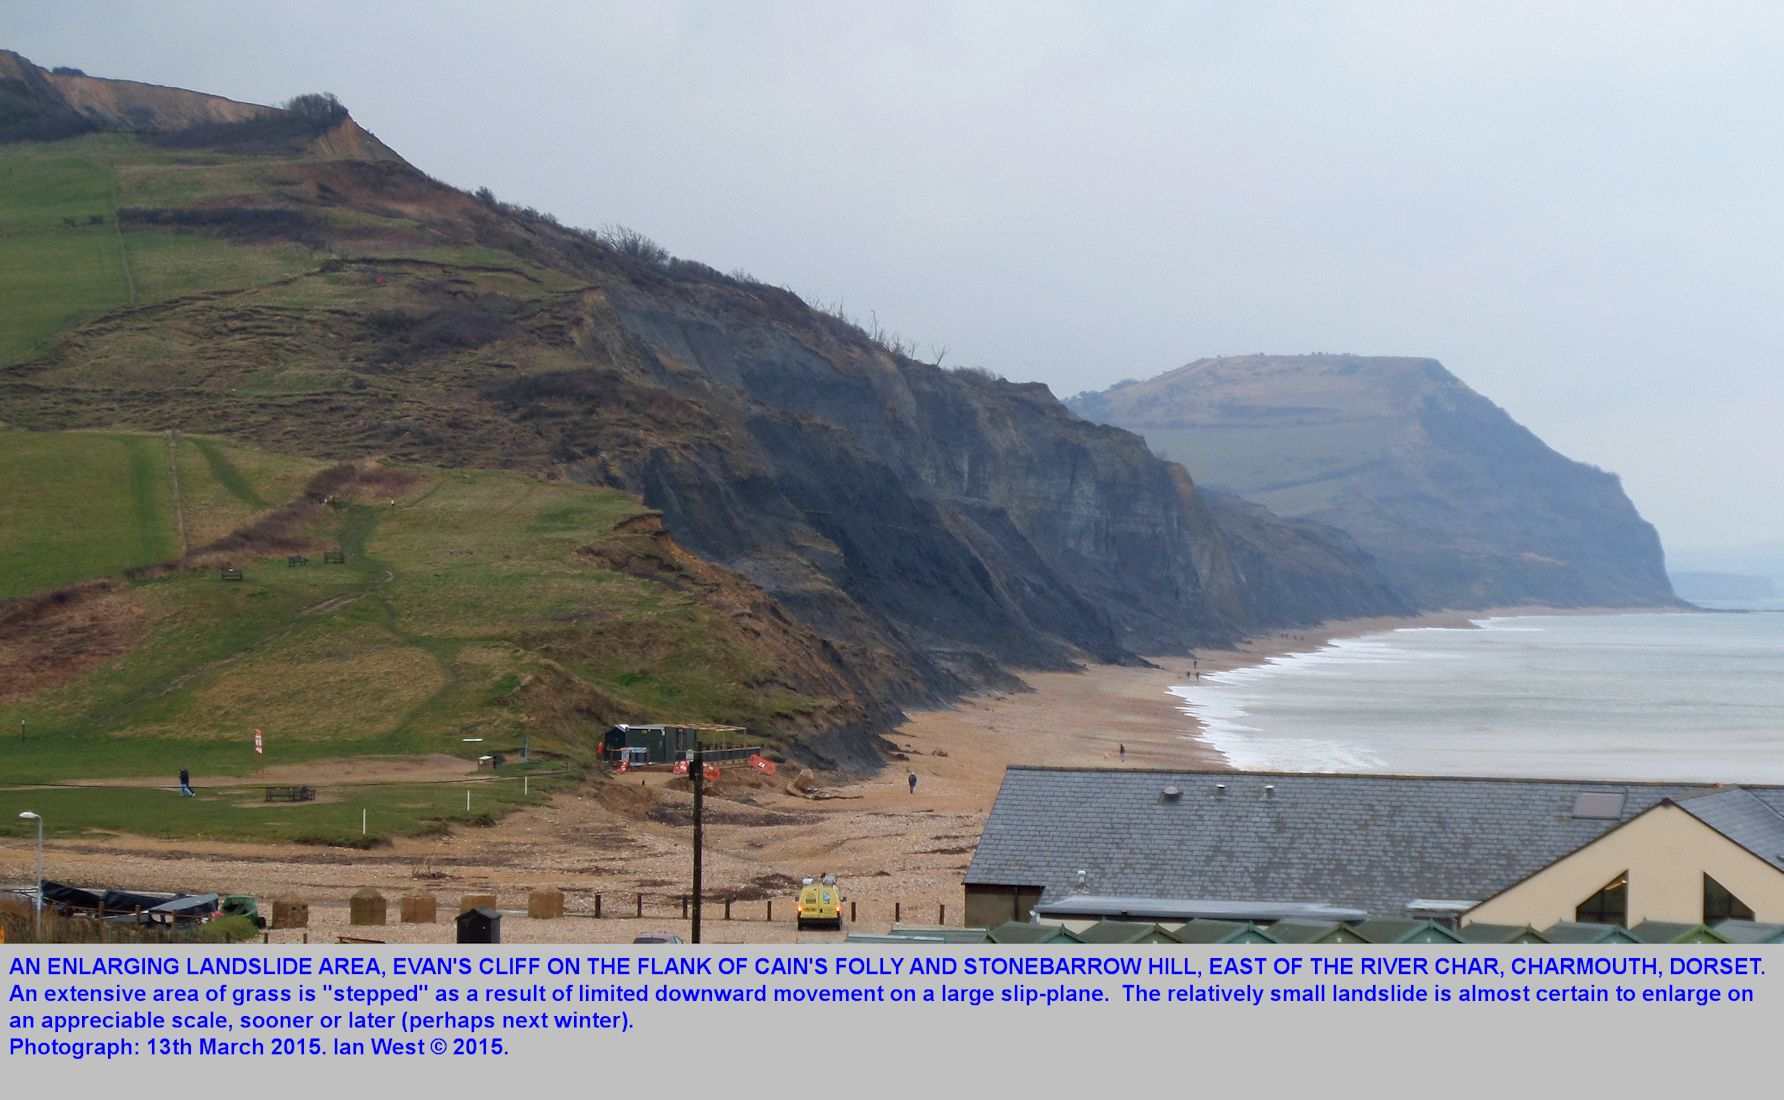 Englargement of the Evan's Cliff Landslide, east of the River Char, Charmouth, Dorset, seen as steps in the grass slope, 13th March 2015